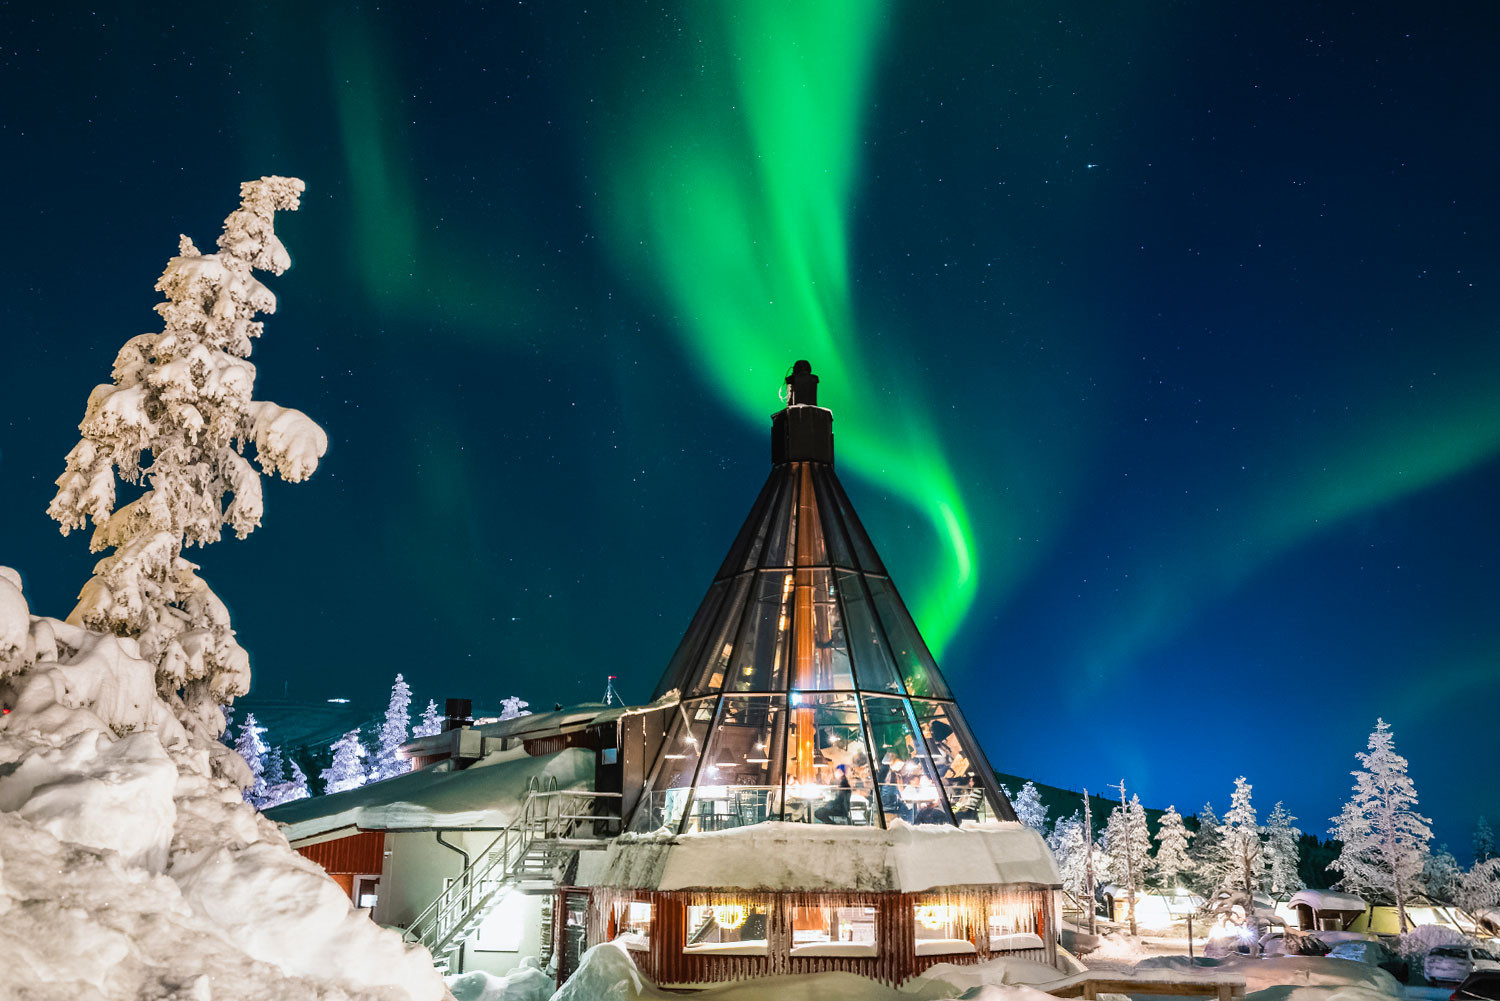 The best igloo experience in Finnish Lapland.